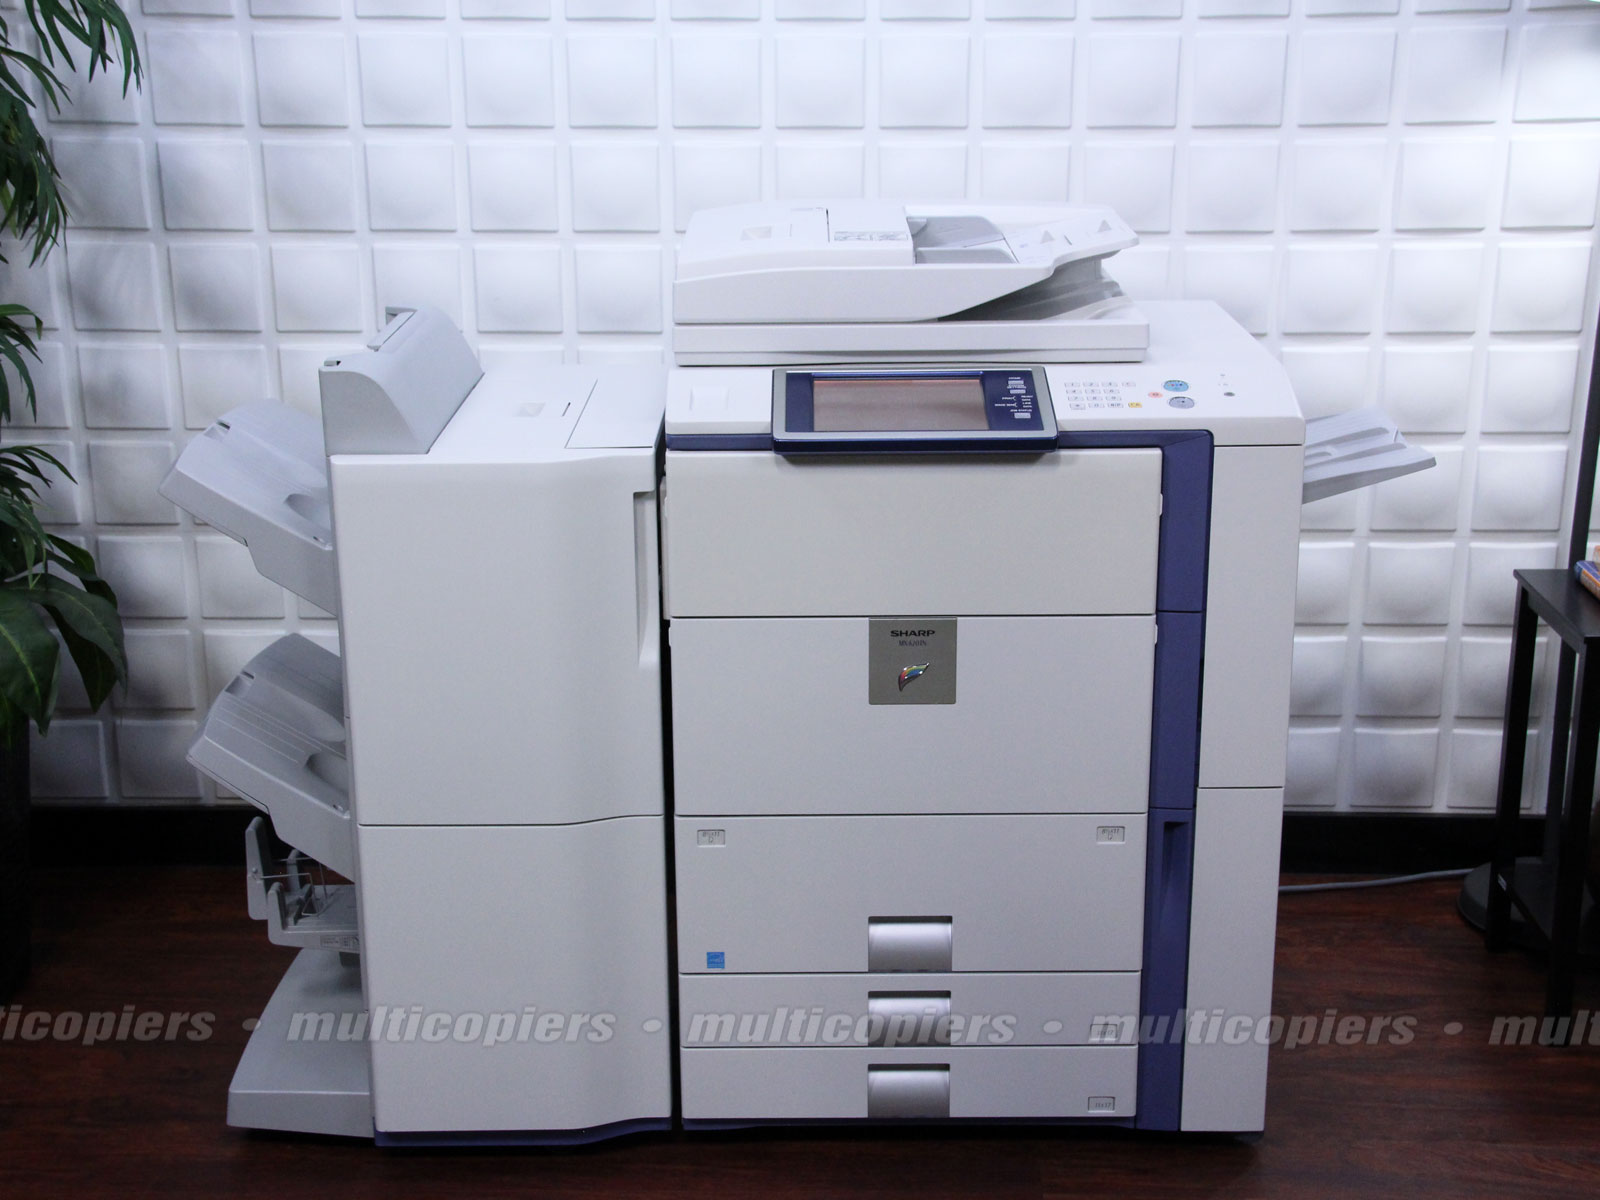 Sharp MX-6201N Printer PCL PS Windows 7